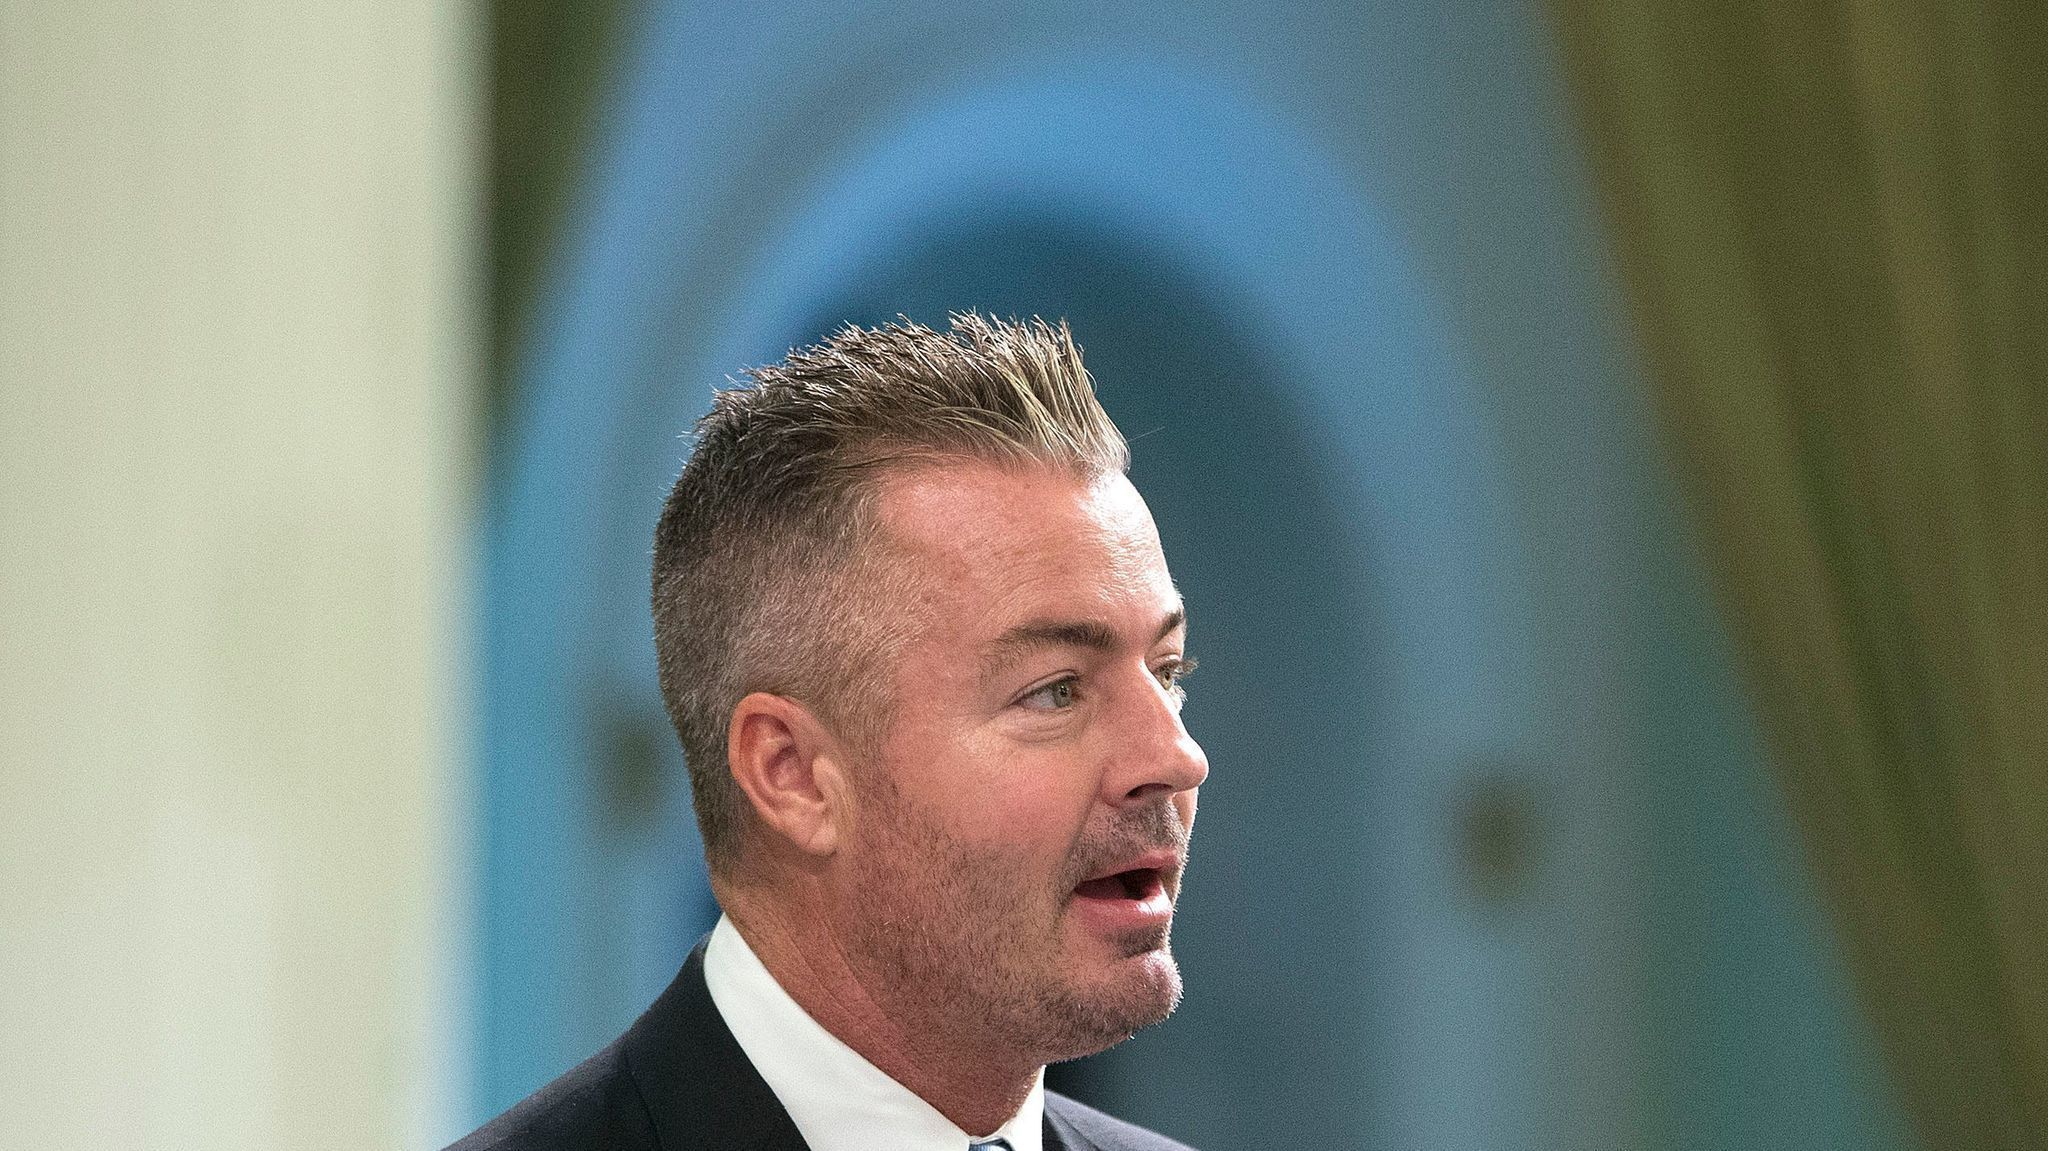 Assemblyman Travis Allen (R-Huntington Beach) wants to repeal the gas tax increase approved by the governor in April. (Rich Pedroncelli / Associated Press)